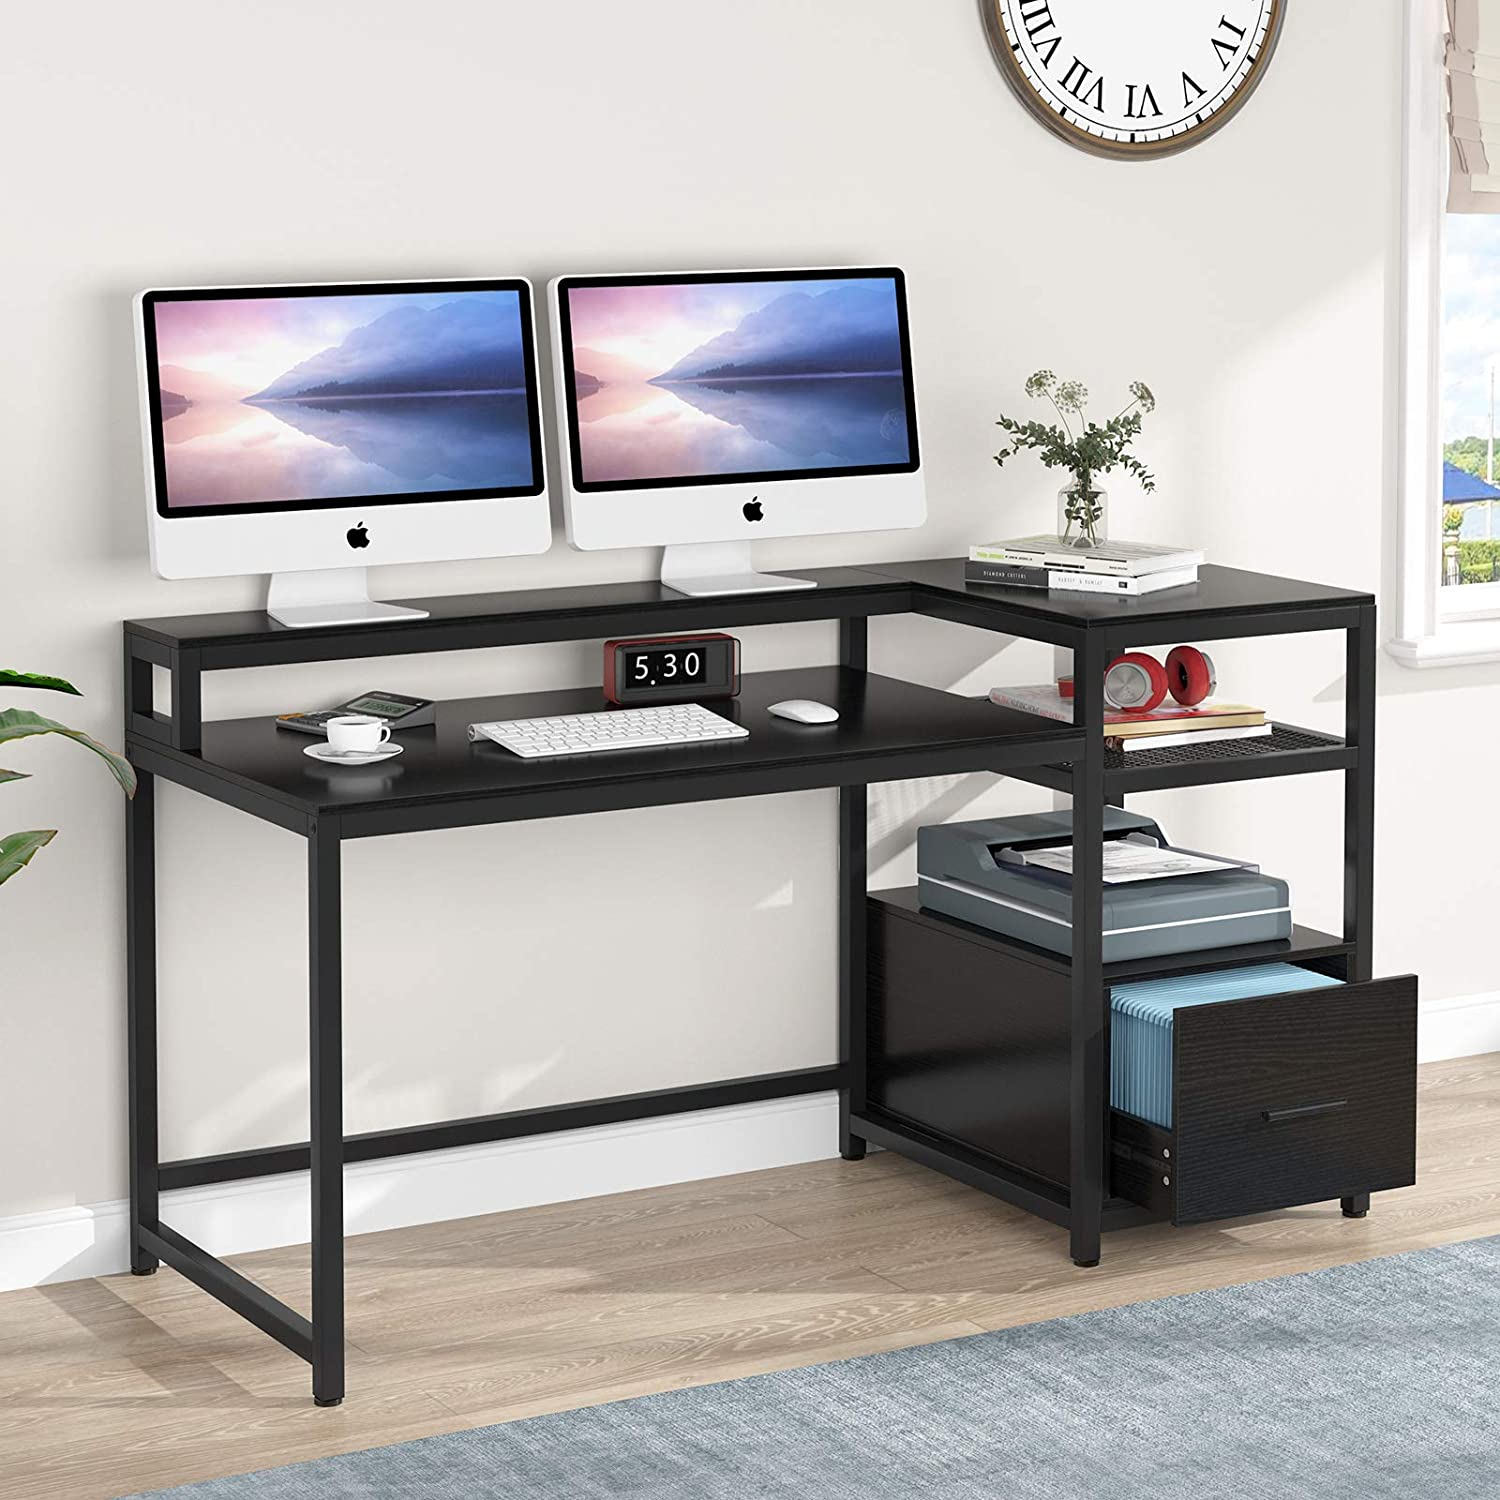 TIYASE Computer Desk SALENEW very popular! with Hutch and Storage Lar inch 59 Shipping included Shelves